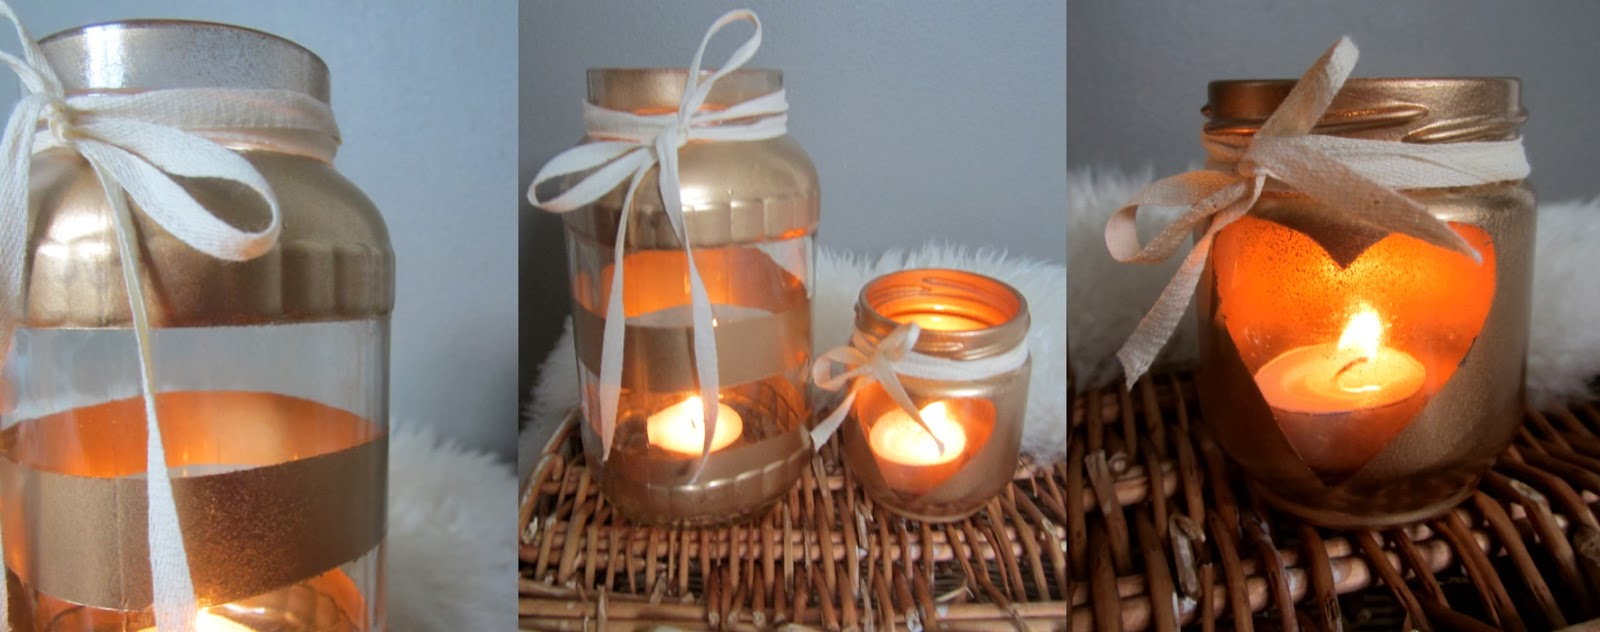 DIYMason Jar Candle Holders Rach Speed